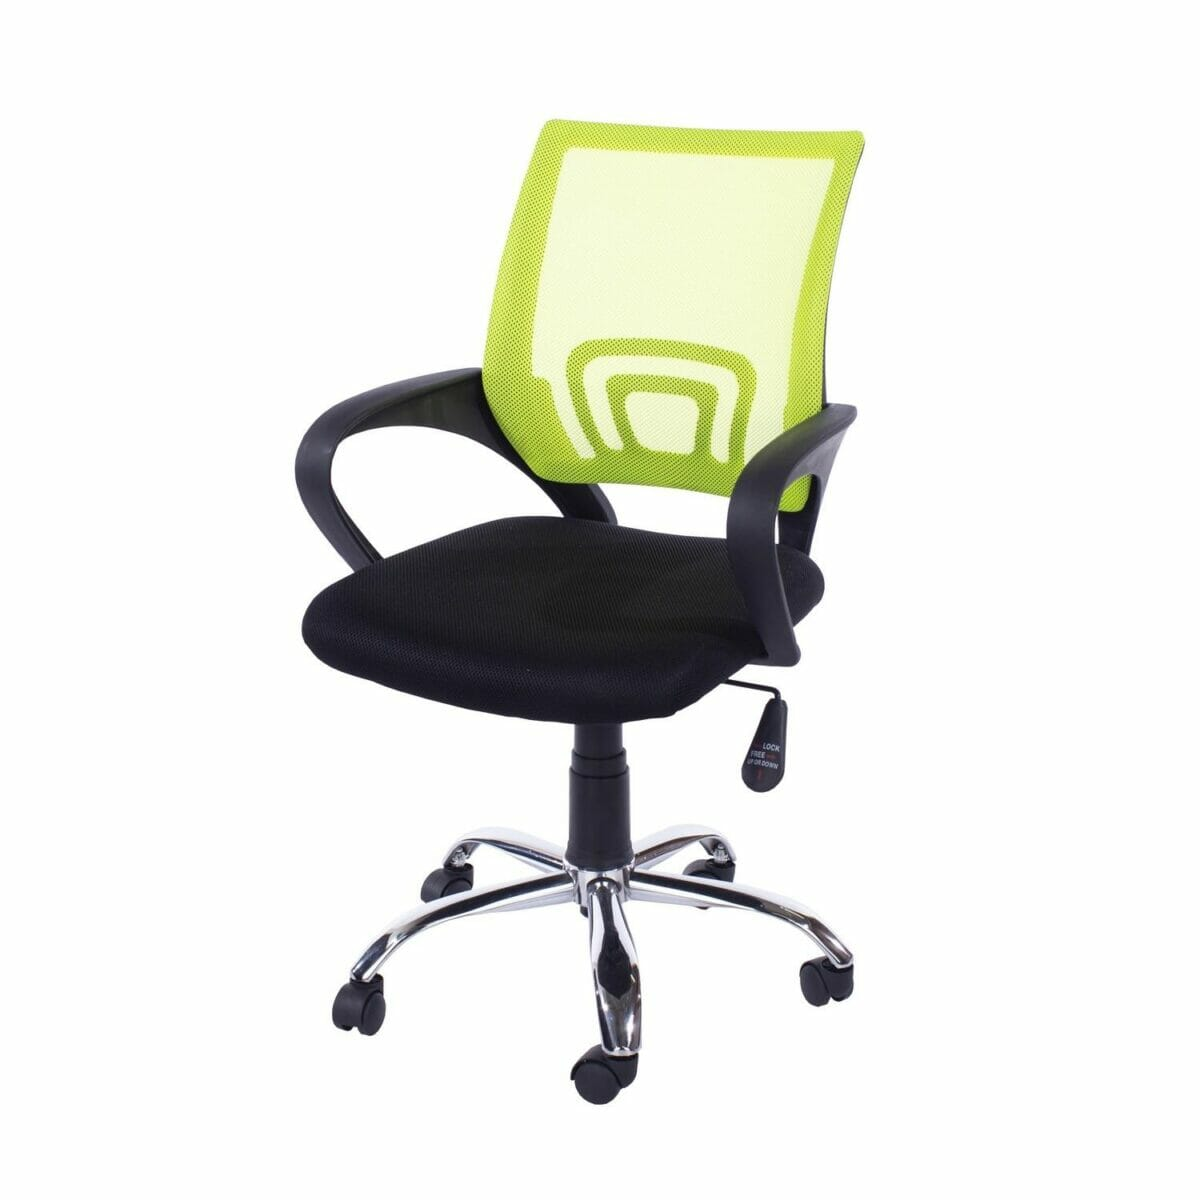 Loft Home Office Plastic Chair In Lime Green Mesh Back, Black Fabric Seat & Chrome Base